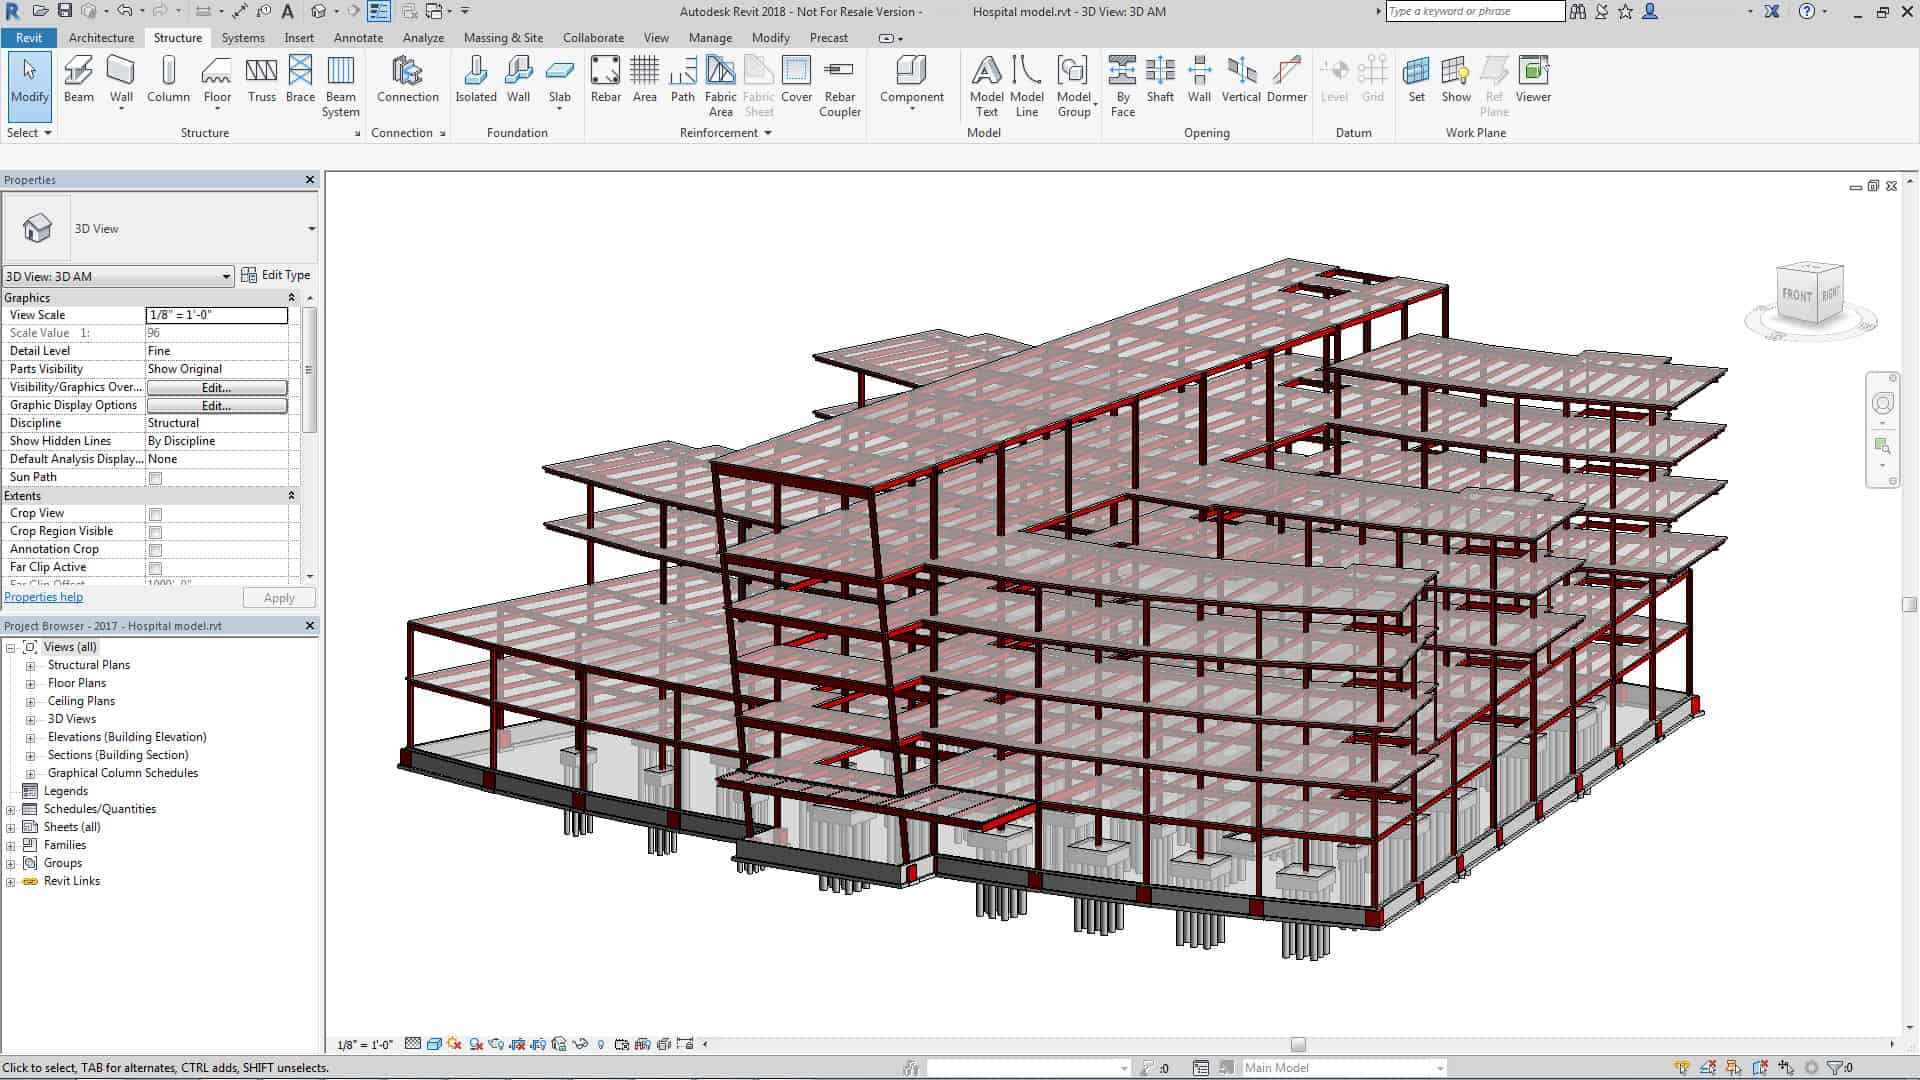 Drawing done in Revit